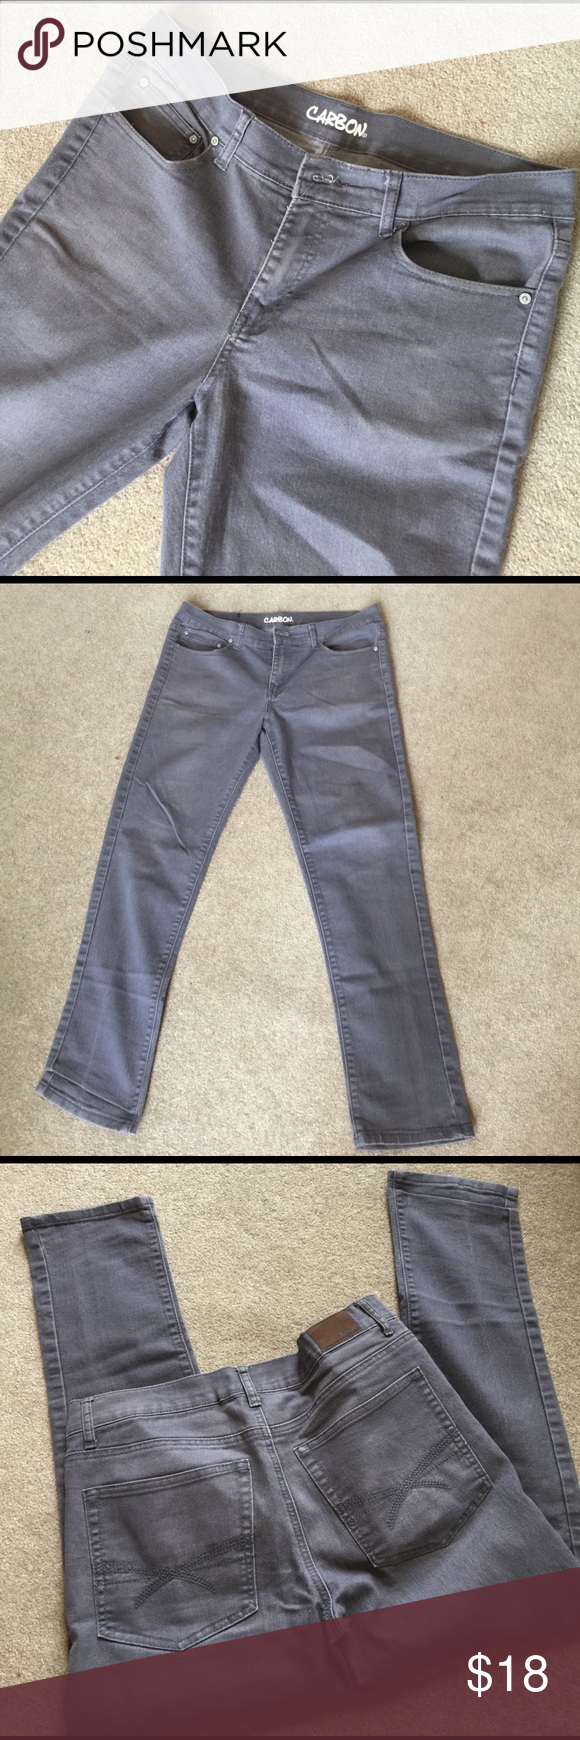 Men's gray carbon jeans 29 inch inseam. 70% cotton 27% polyester 3% spandex. MC Carbon Jeans Straight